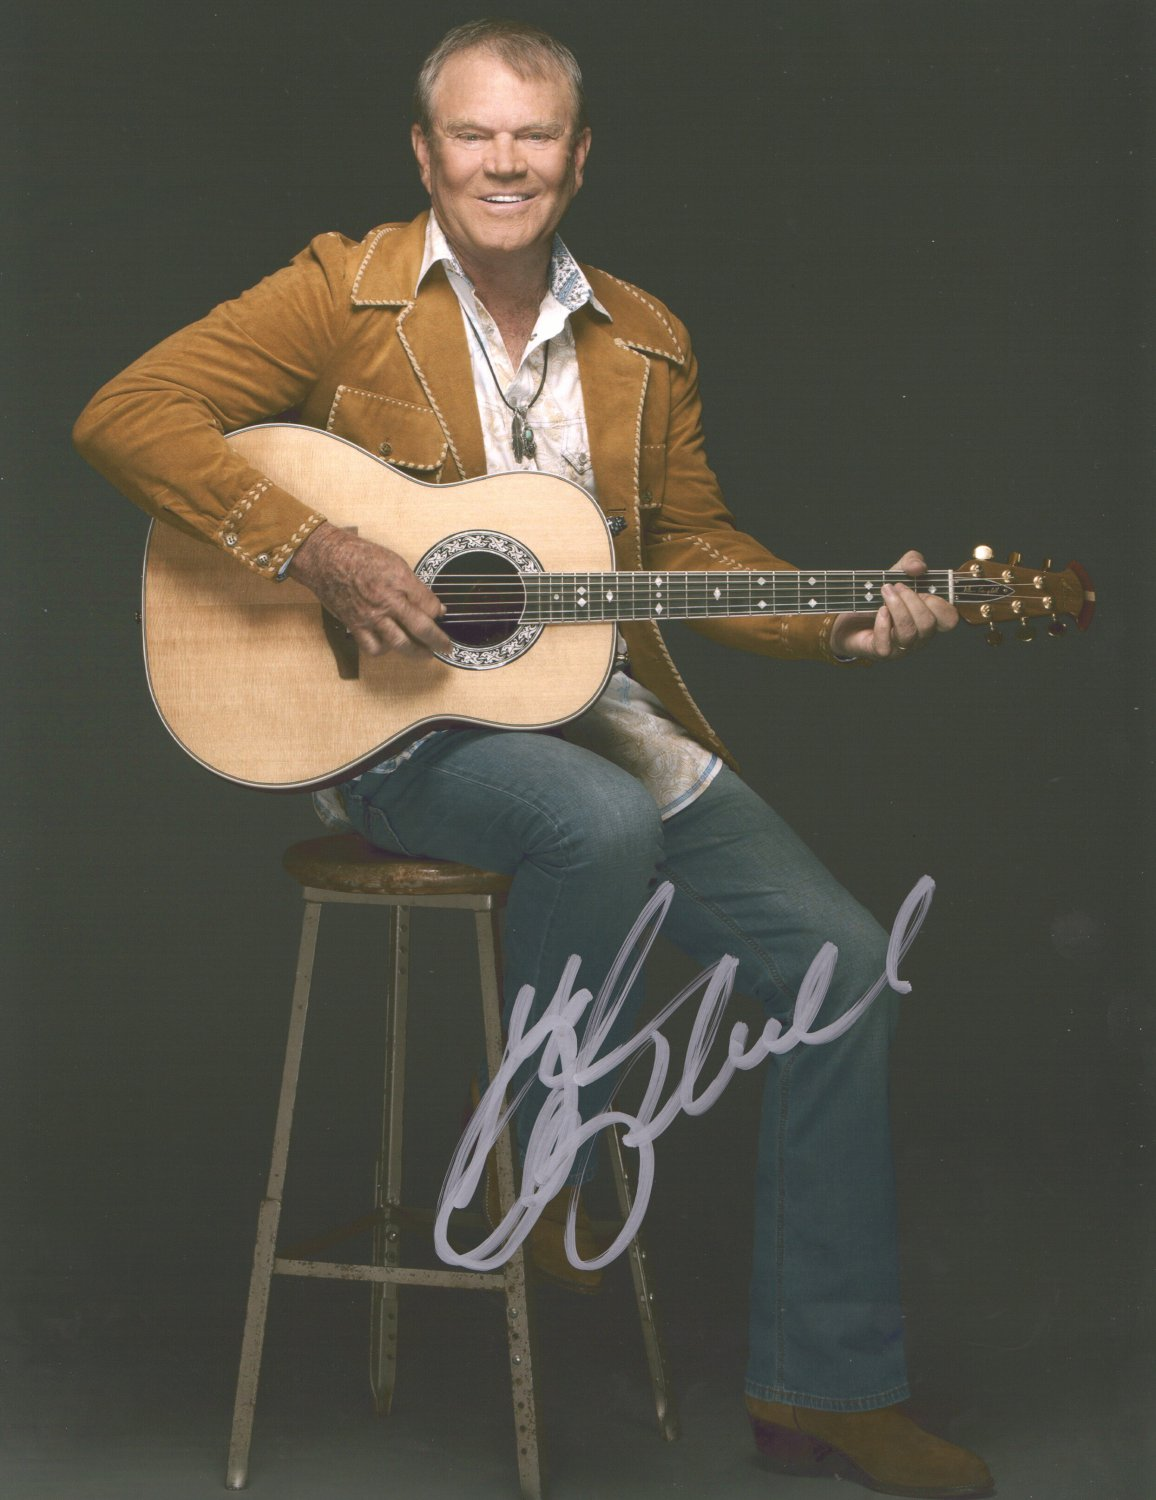 GLEN CAMPBELL - UPCLOSE COUNTRY LEGEND - HAND SIGNED AUTOGRAPHED PHOTO WITH COA